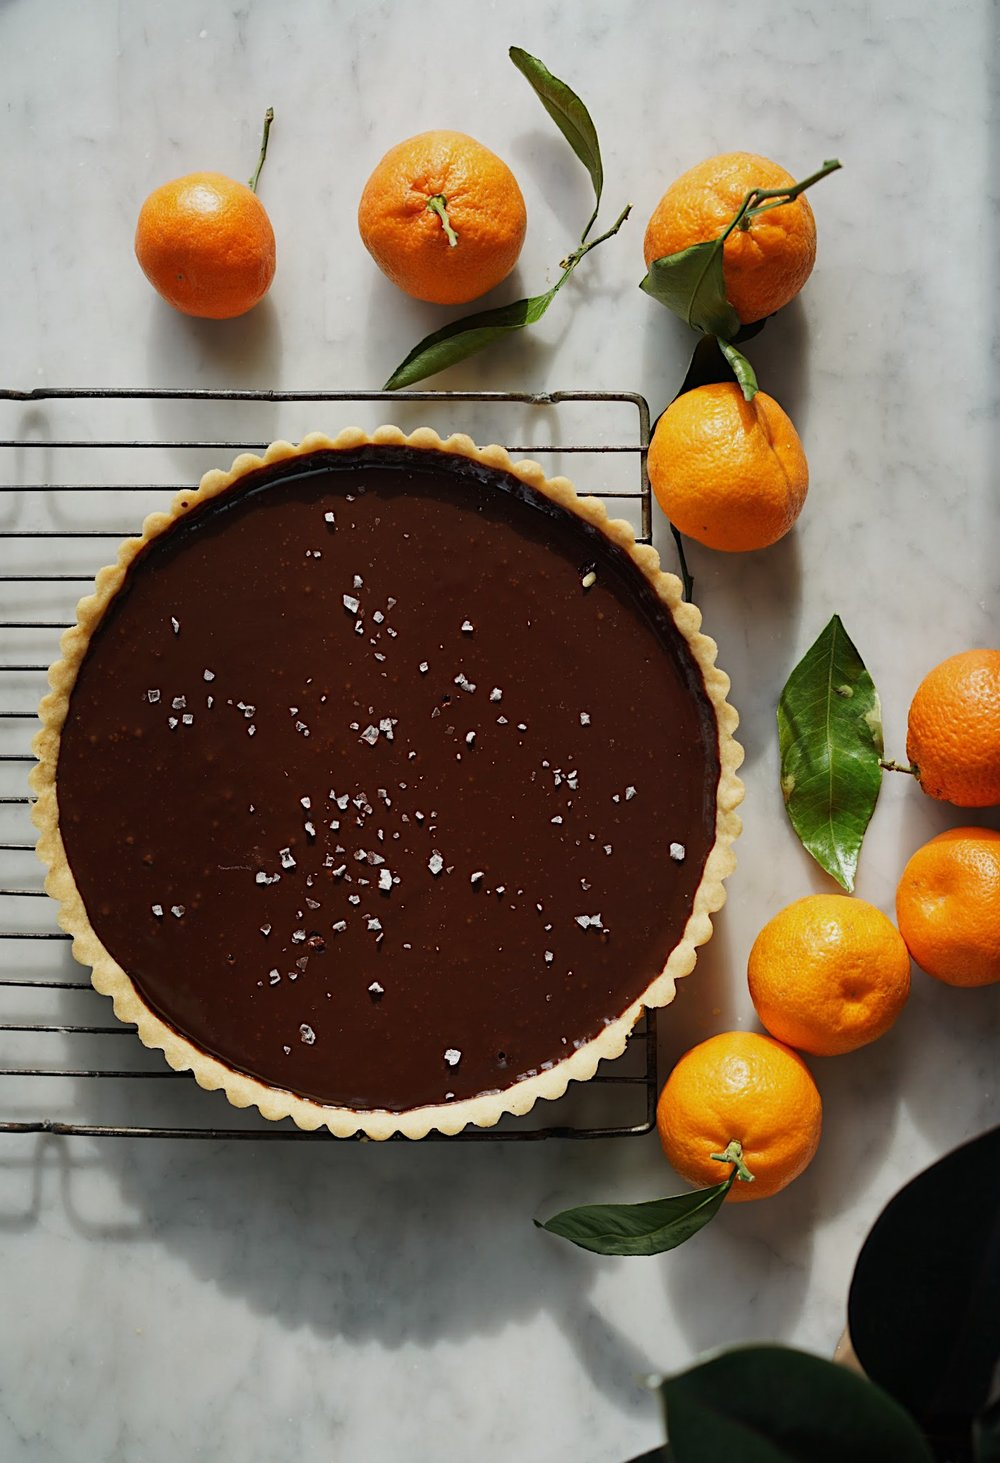 BITTERSWEET CHOCOLATE TART WITH SEA SALT  by Sarah Copeland #chocolate #bittersweetchocolate #chocolaterecipes #chocolatetruffle #sarahcopeland #edibleliving